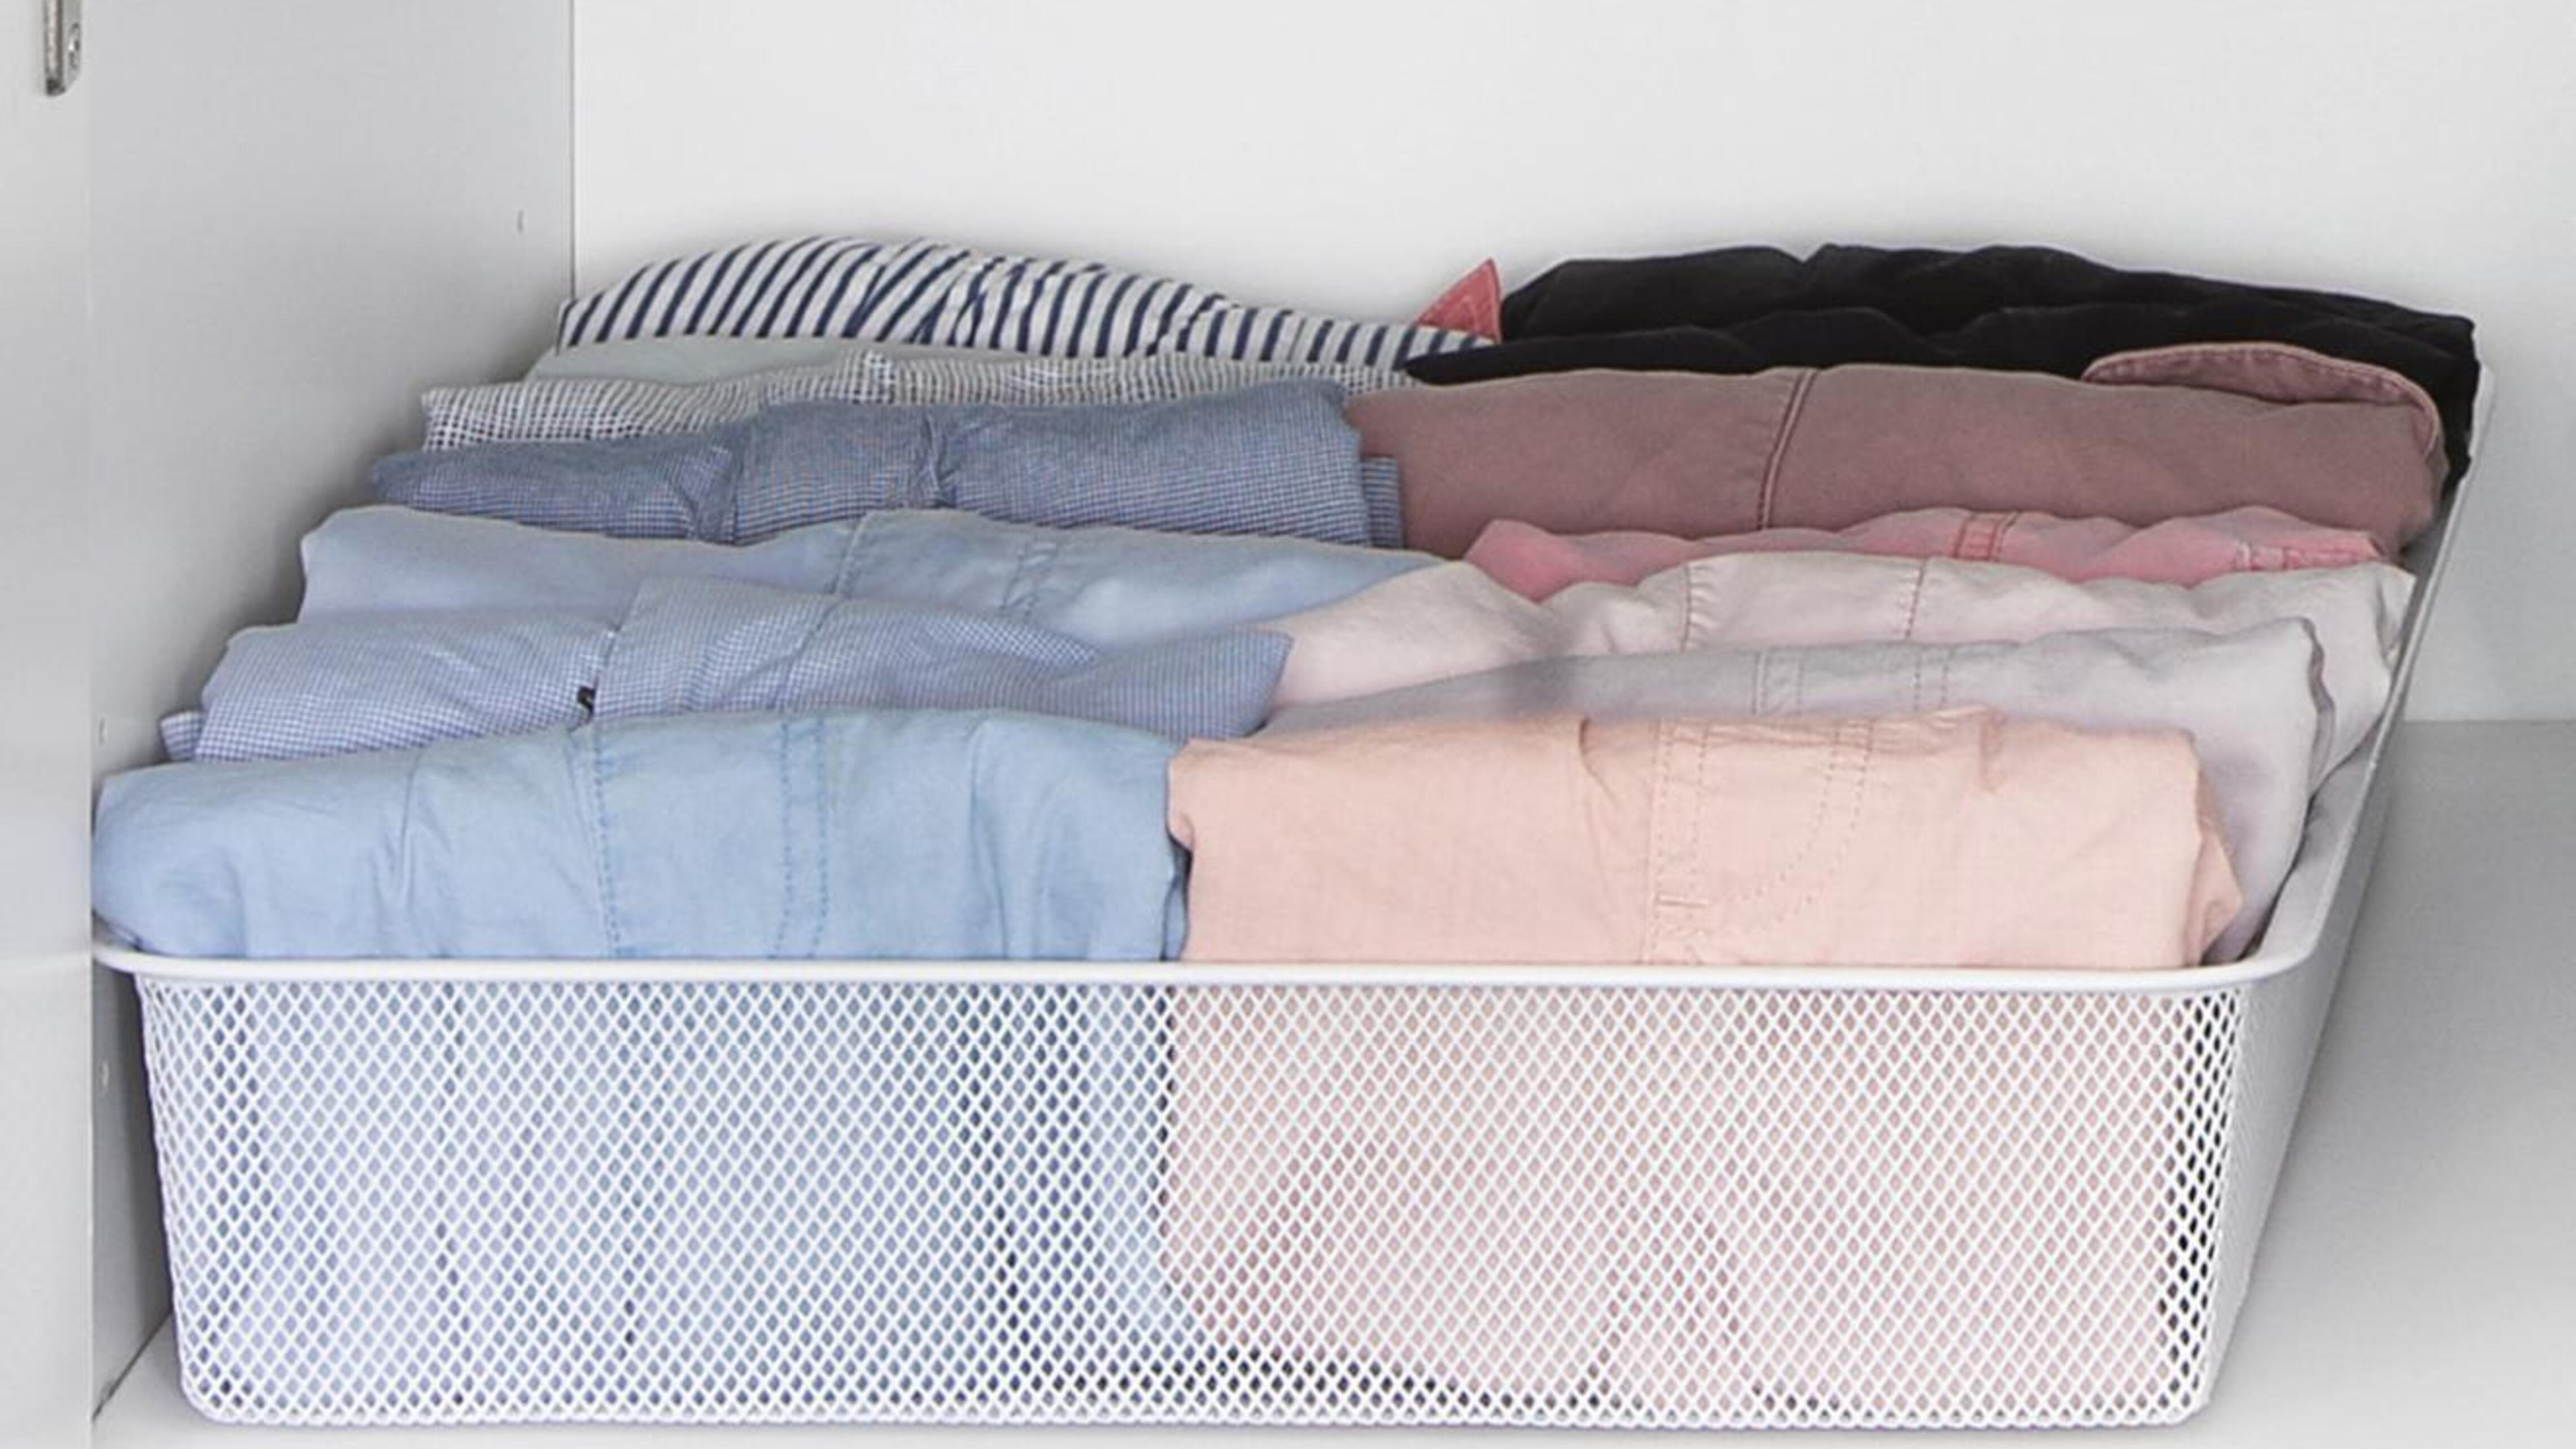 Clothes folded into a basket tray.